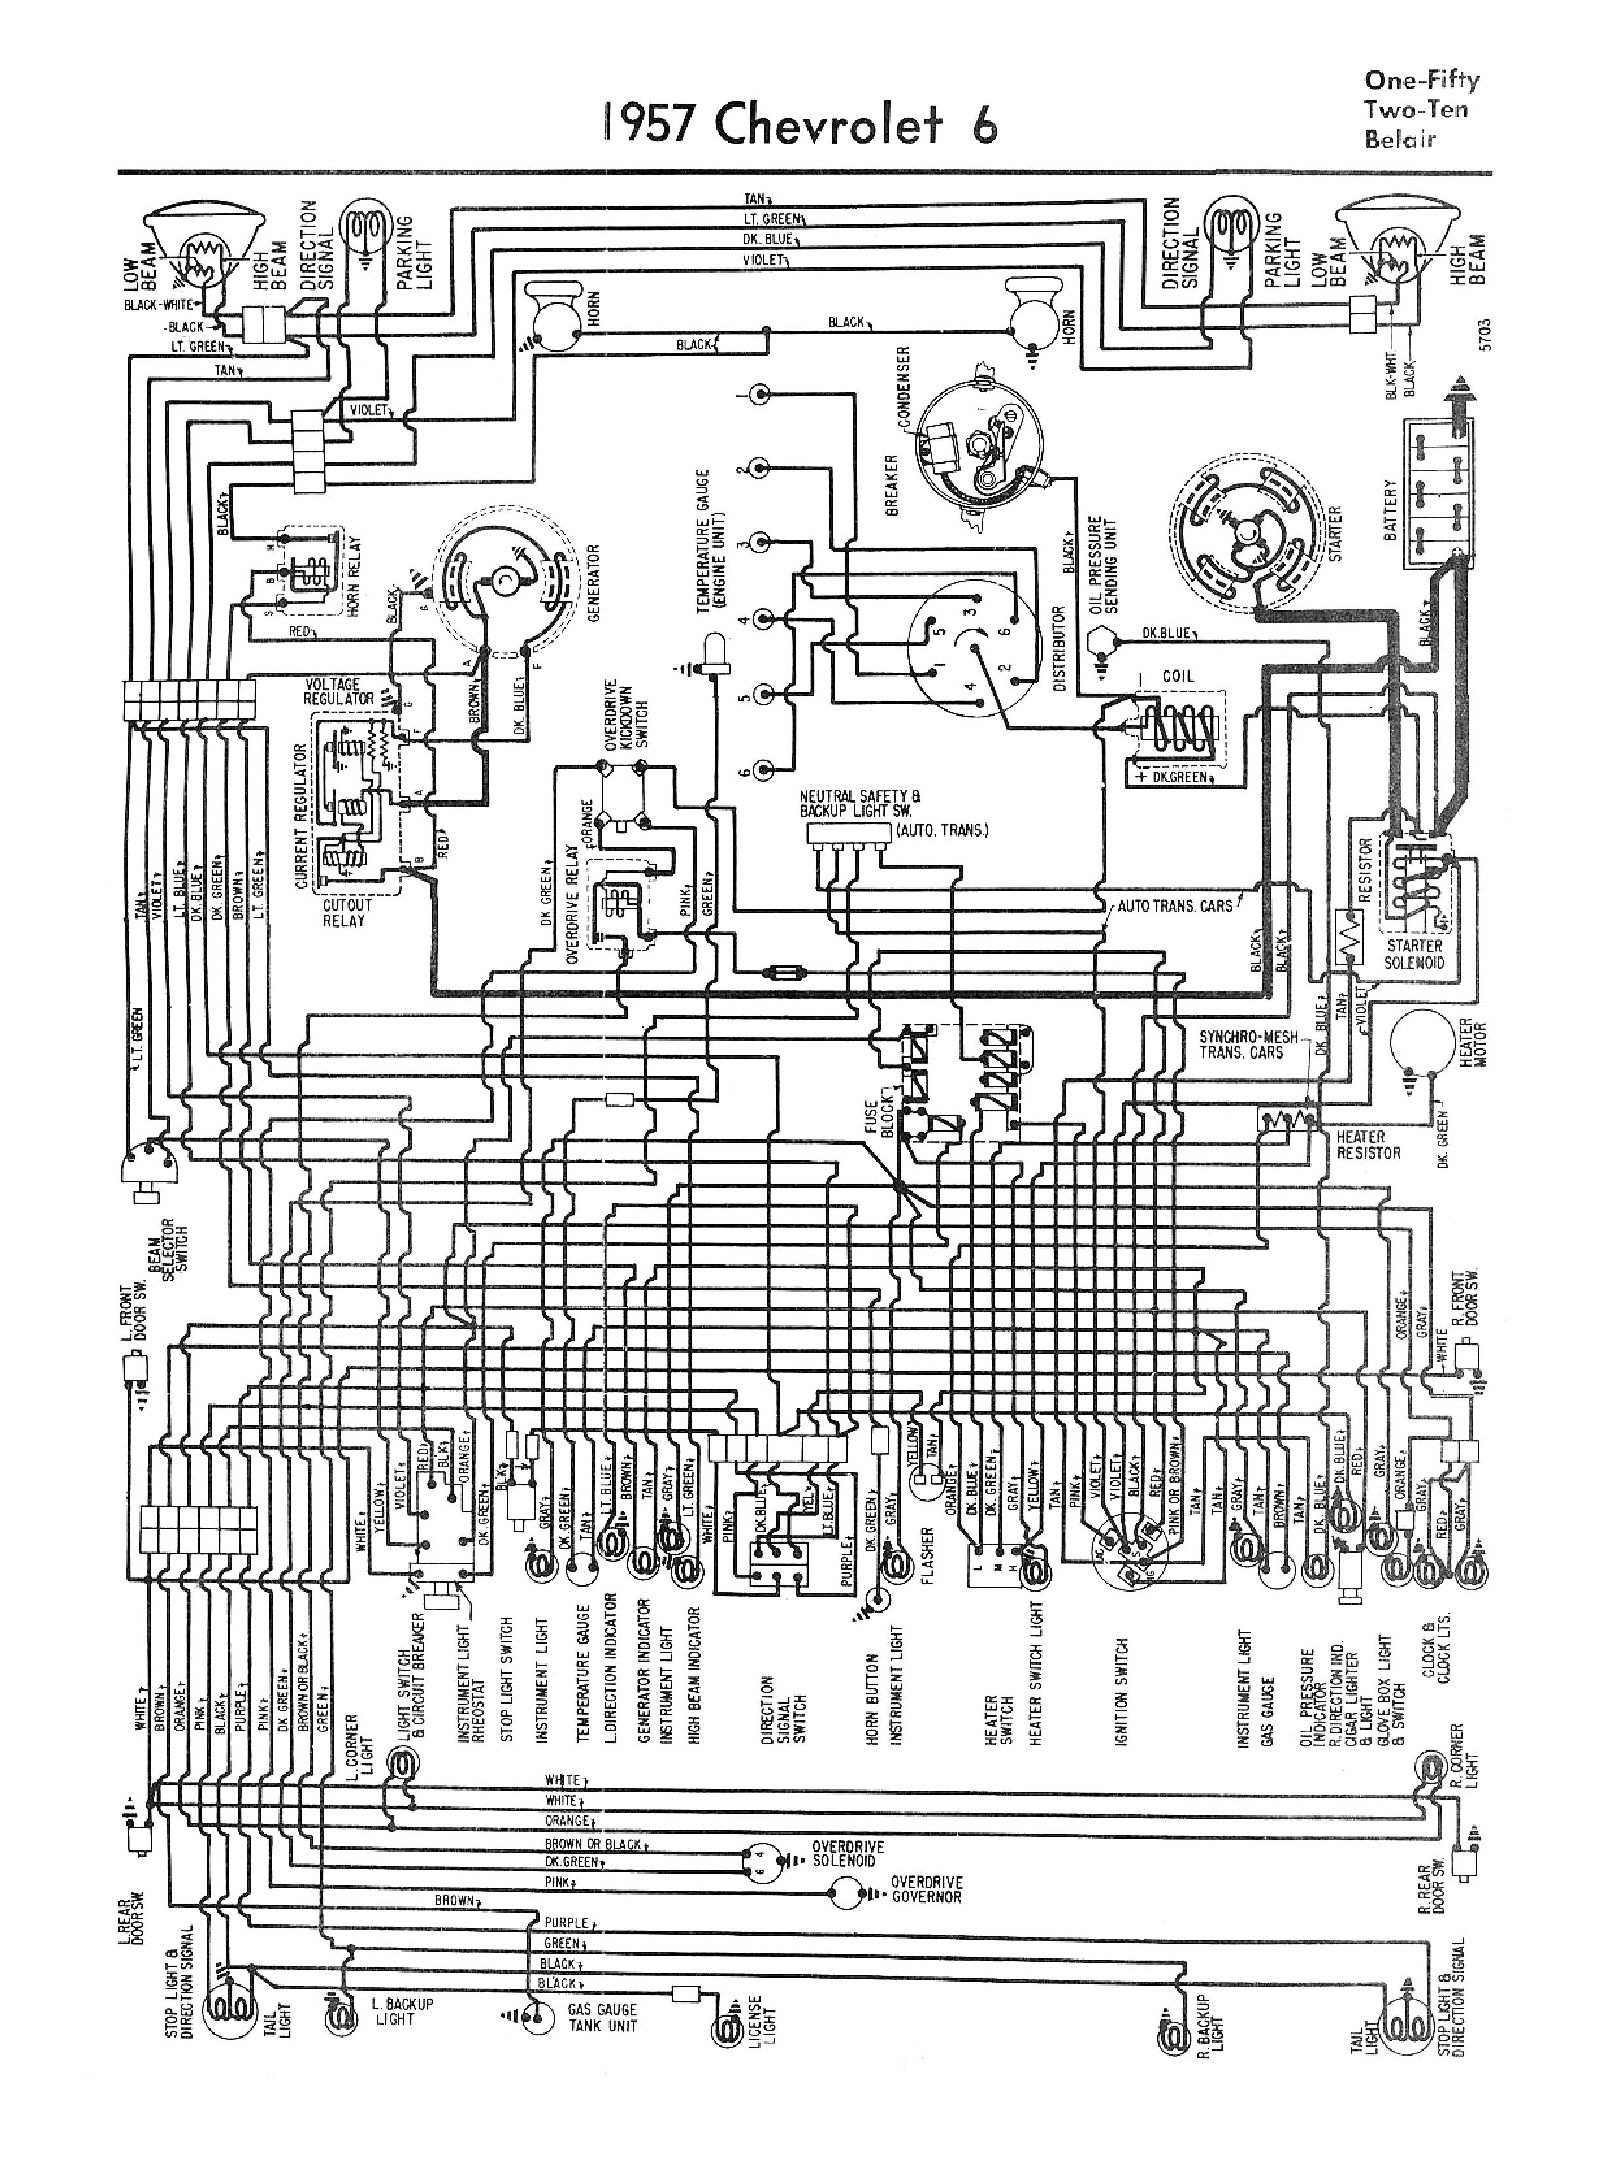 57v6 chevy wiring diagrams corvette c1 wiring diagram at gsmx.co